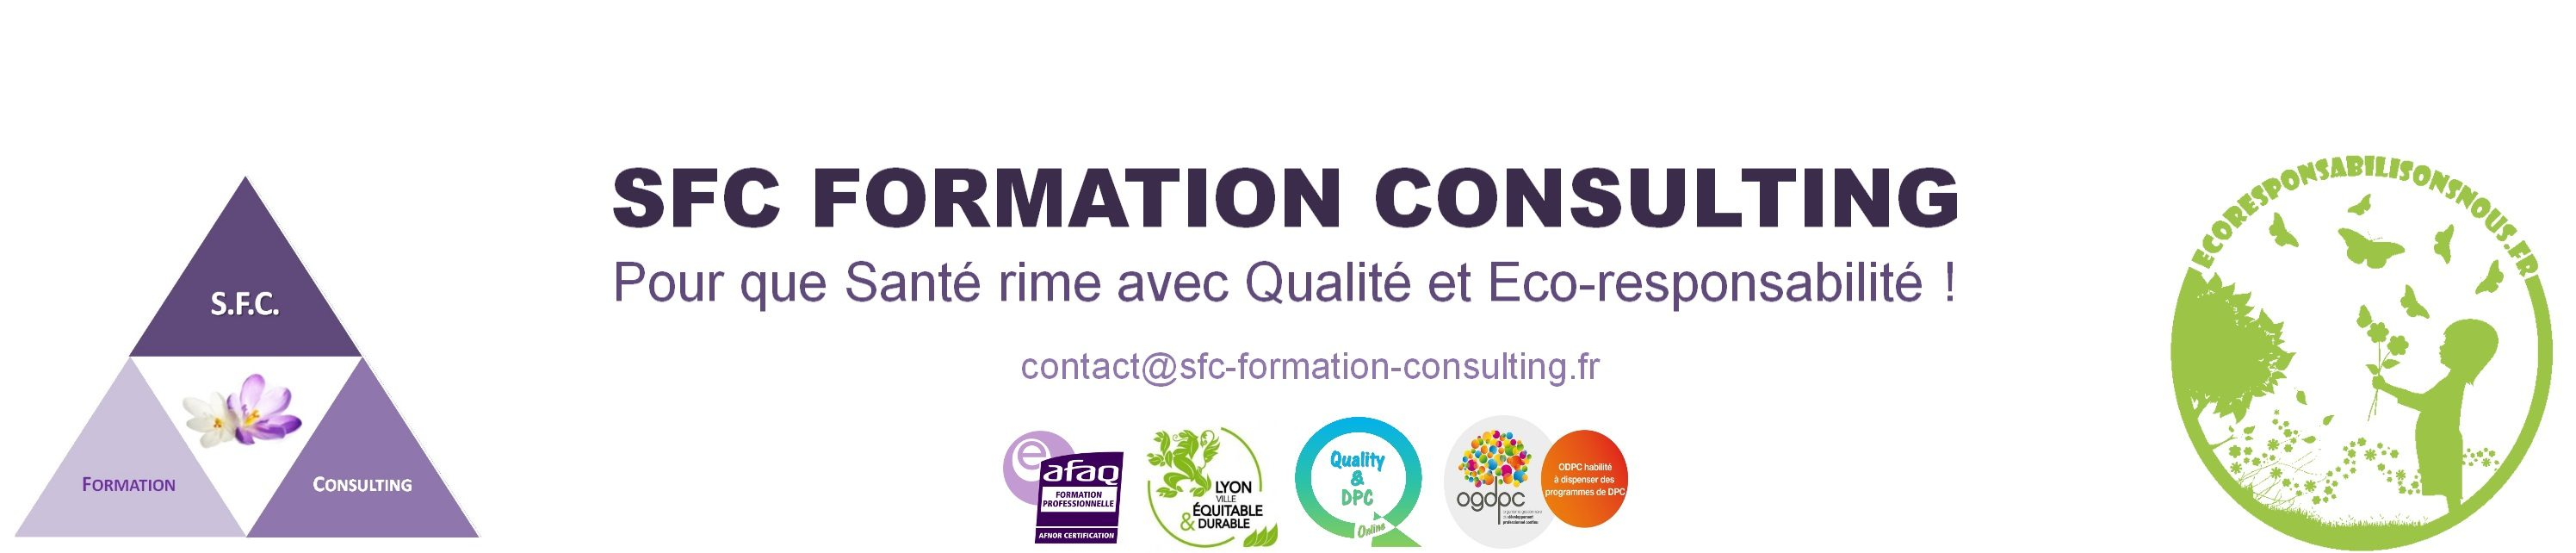 cropped-SFC-Formation-Consulting-Pharmaciens-laboratoires-Ordre-OGDPC-COFRAC5-1.jpg